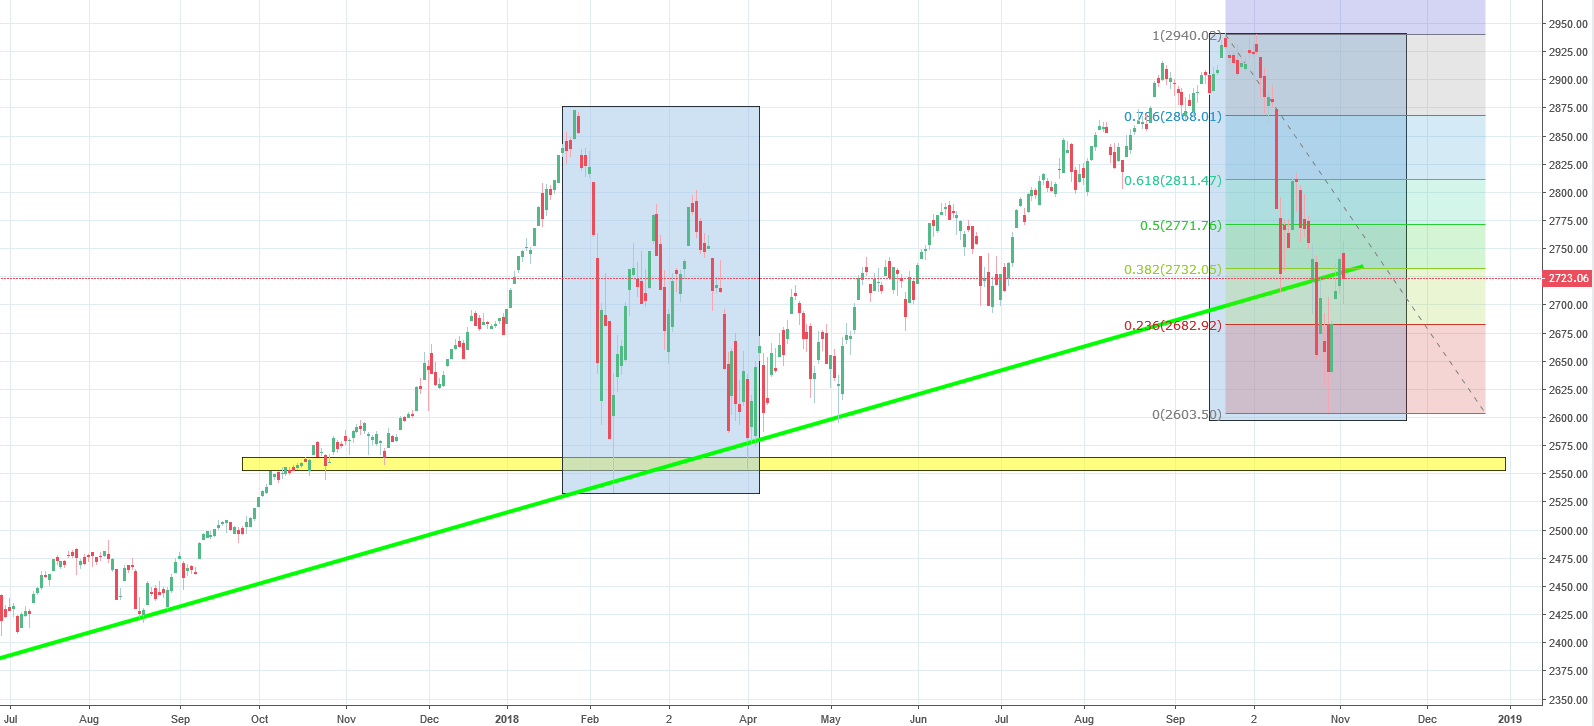 S&P 500 Analysis - correction equality pattern proves right